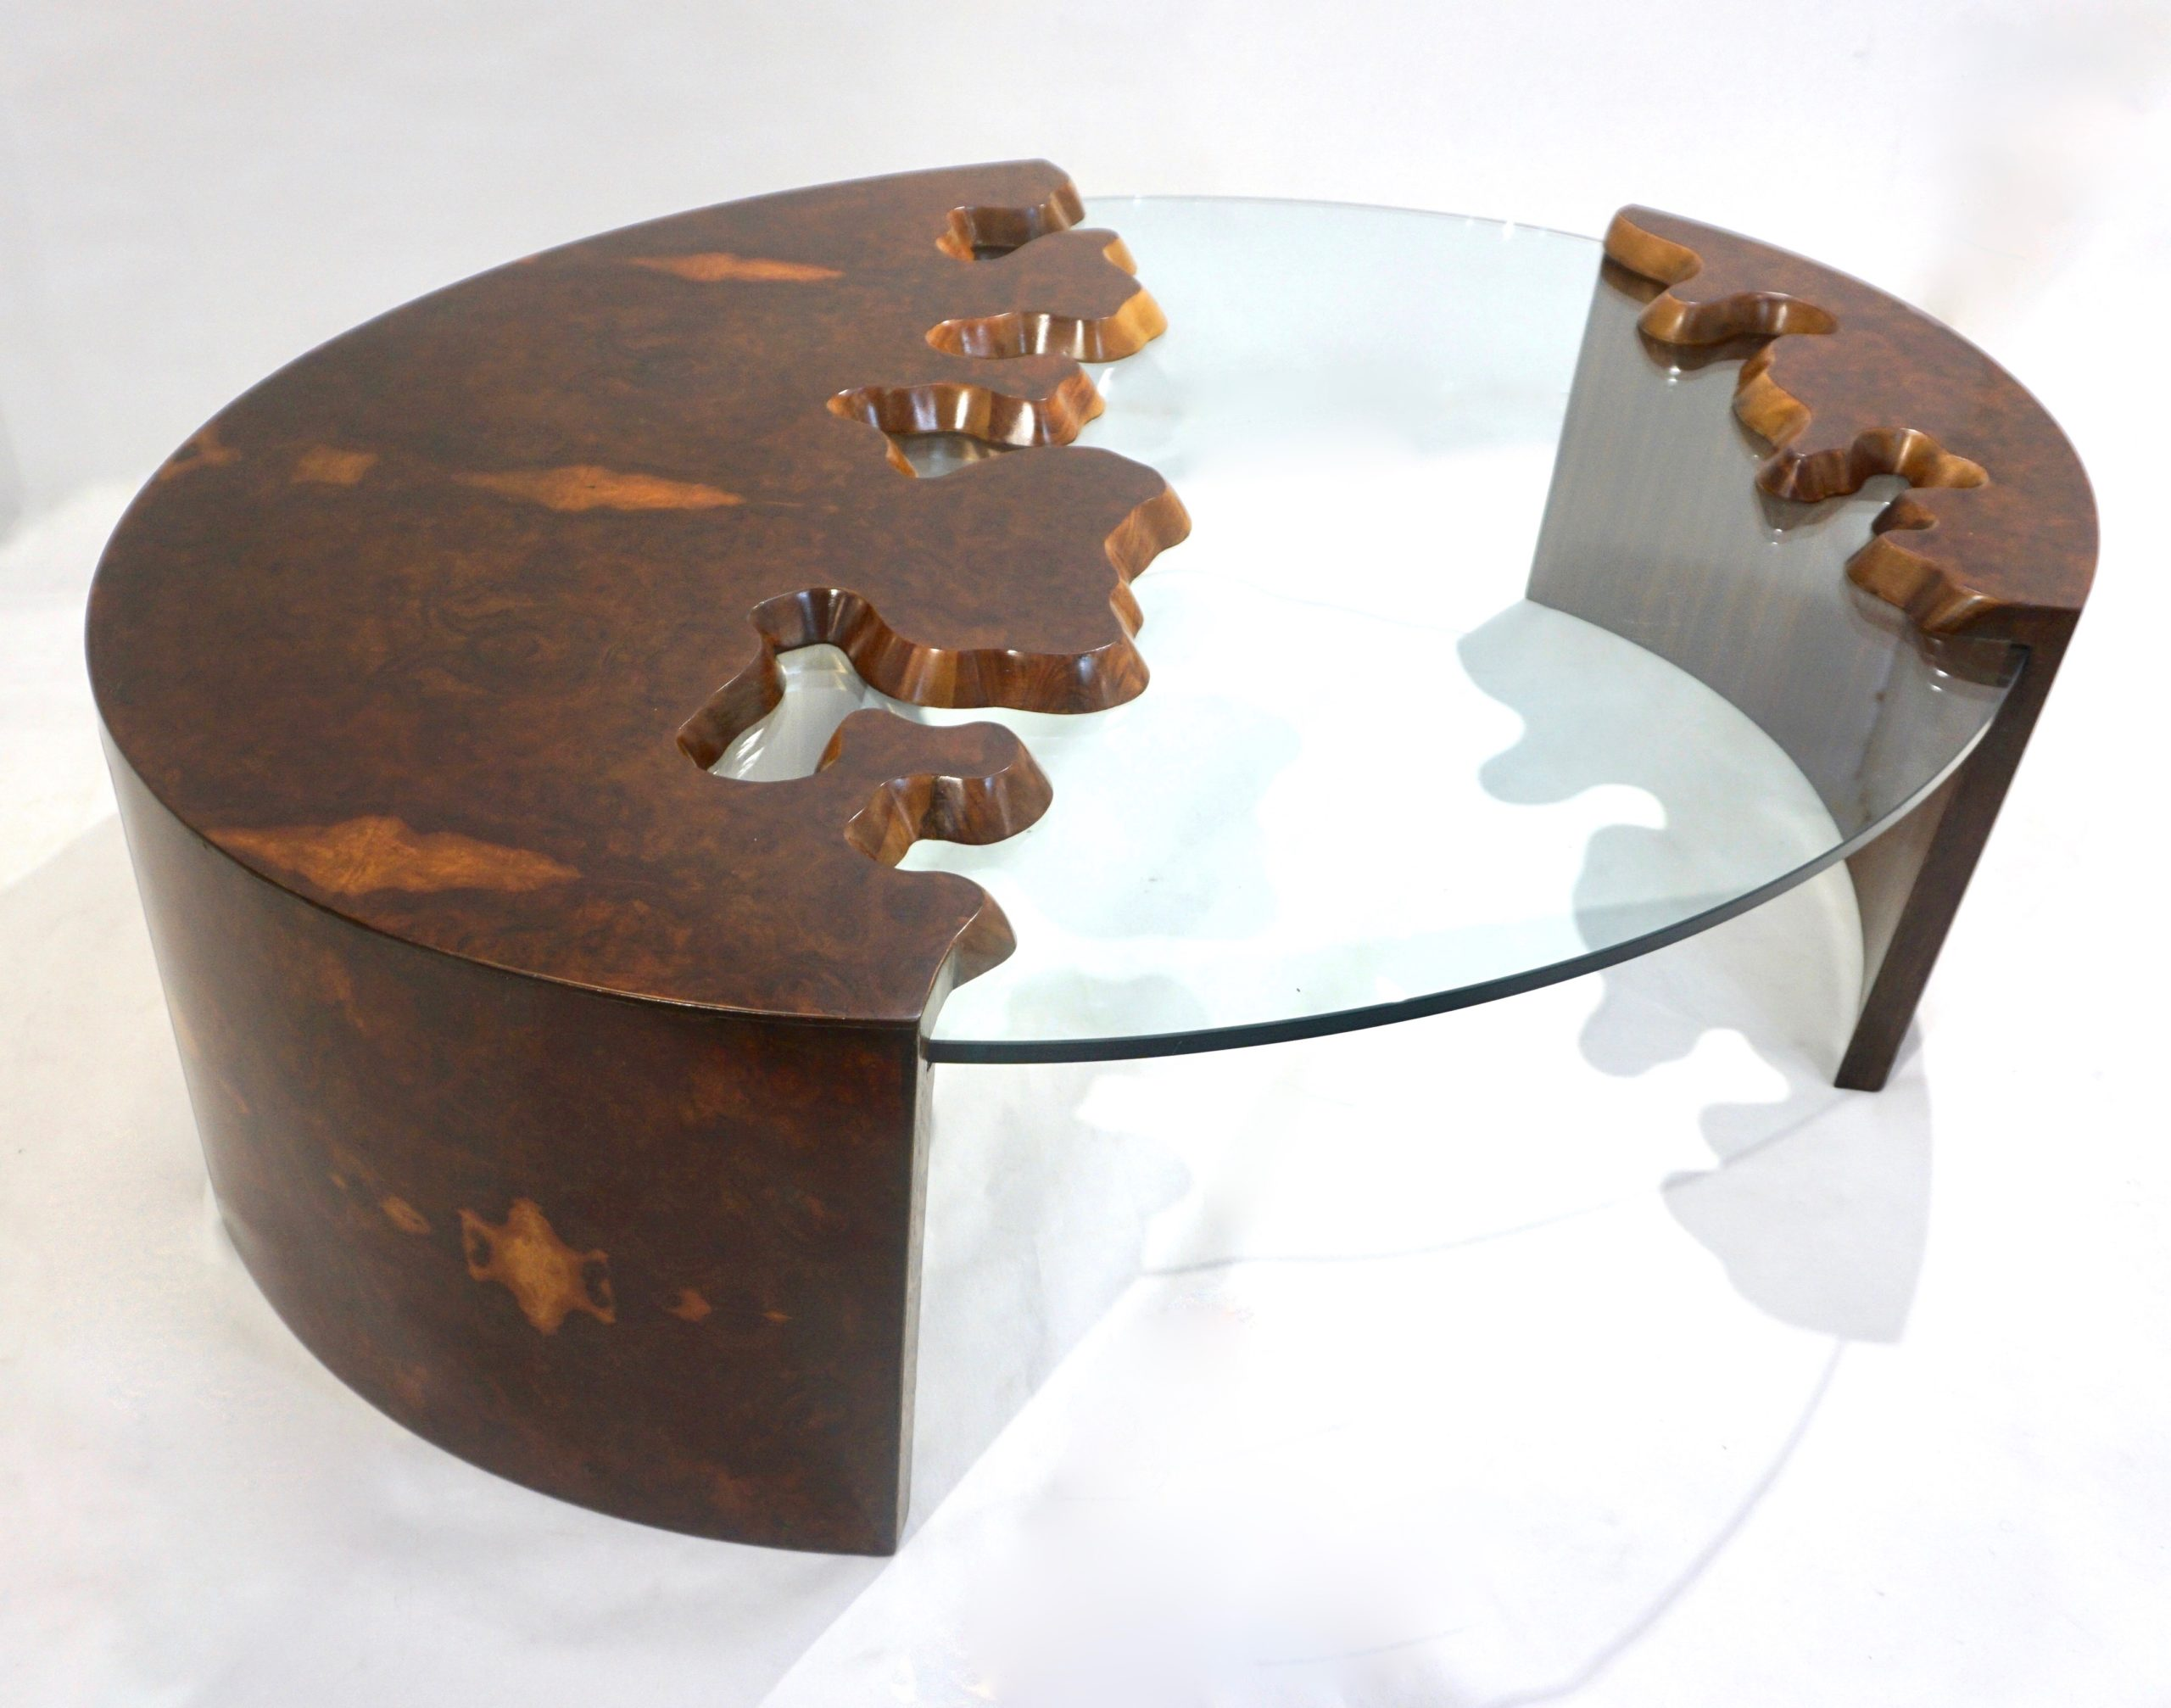 cosulich_interiors_and_antiques_products_new_york_design_Bespoke_1980_Italian_Organic_Walnut_Veneer_Glass_Oval_Coffee_Table_top_side-scaled-2